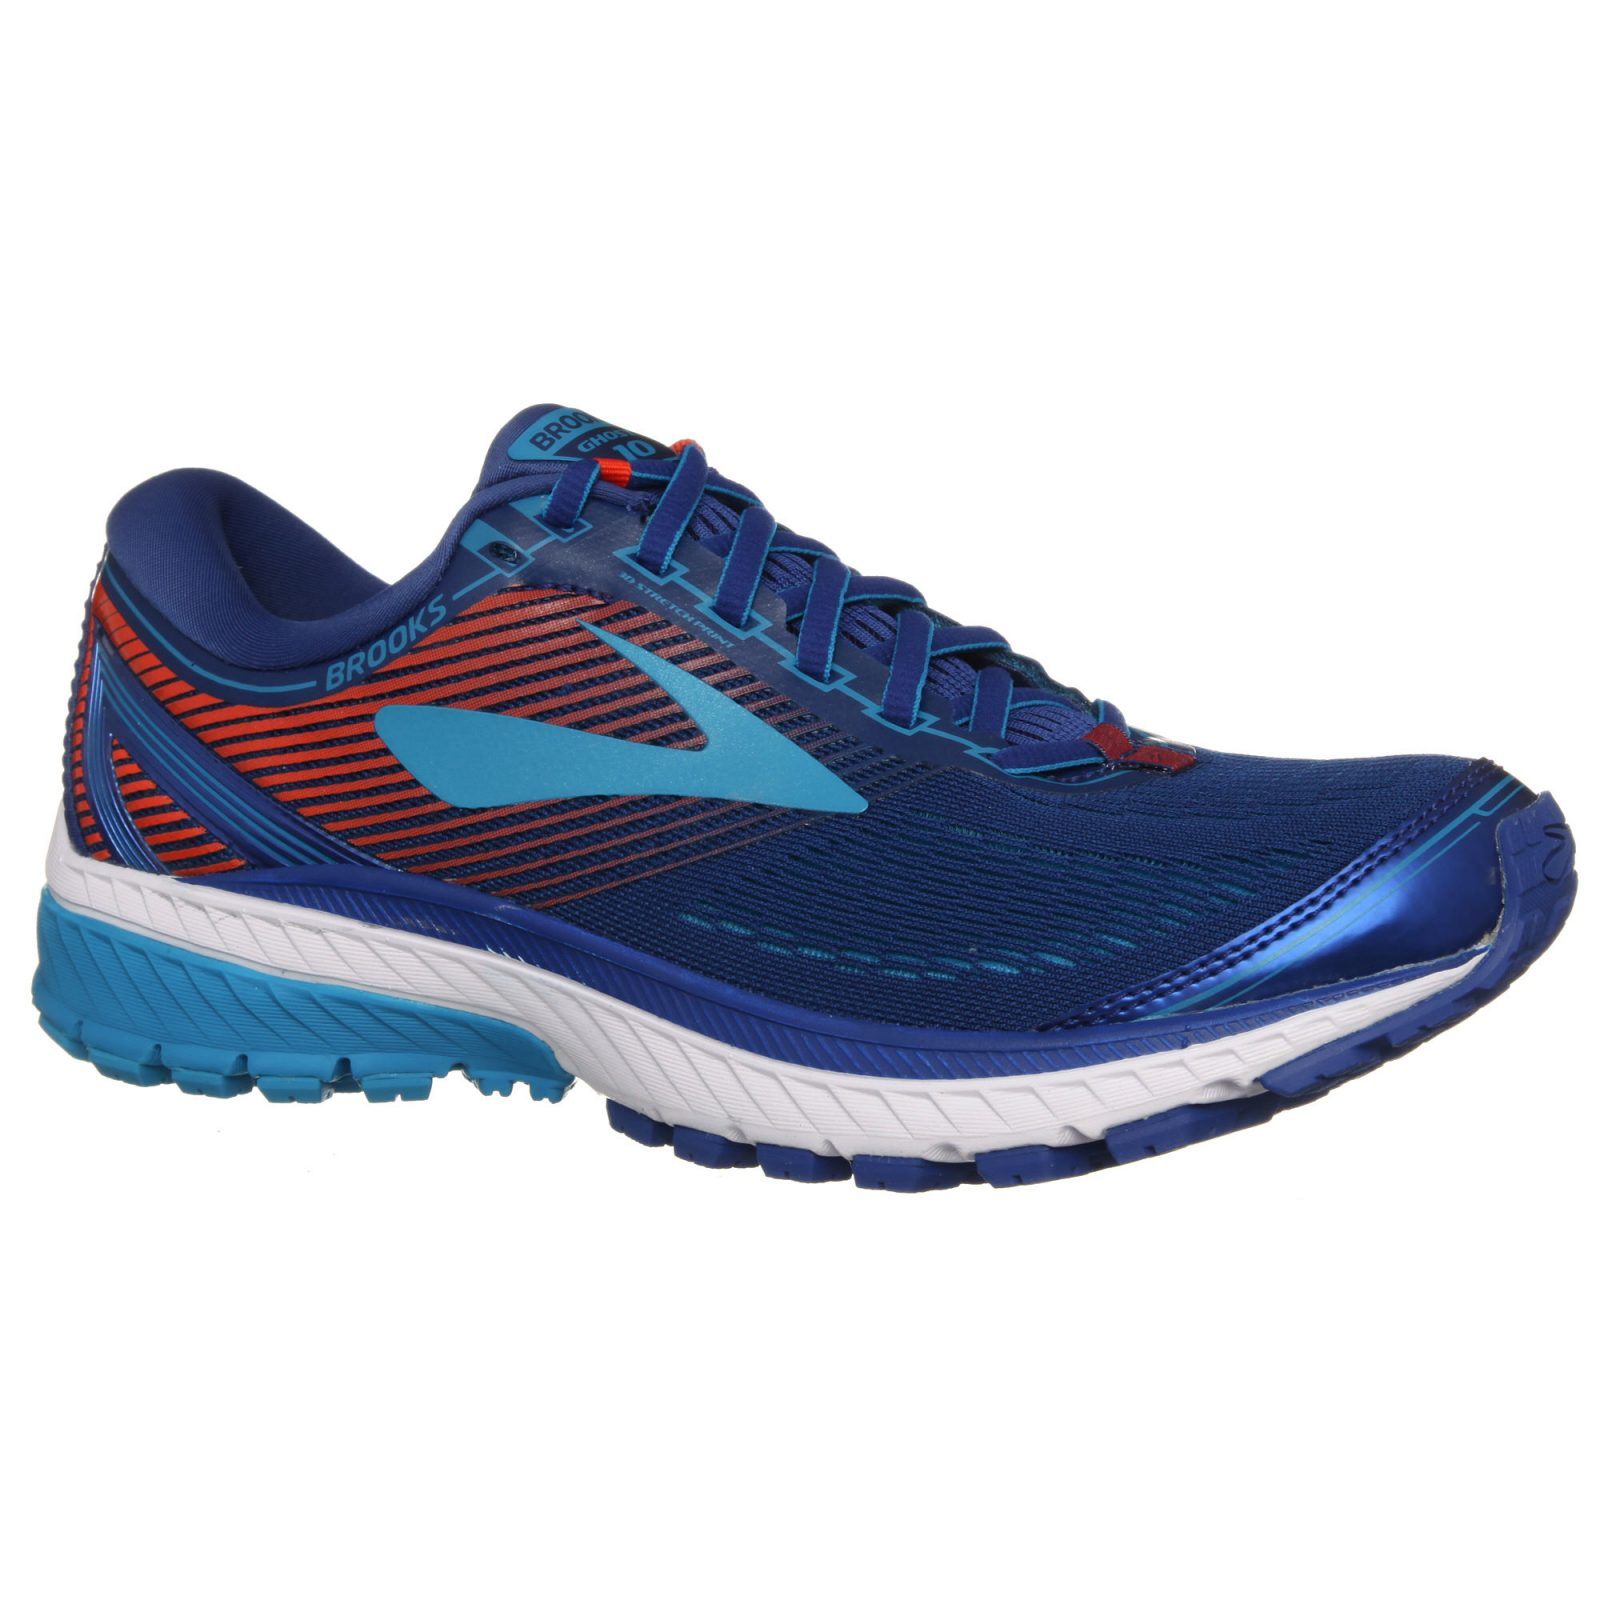 Top Of The Line Brooks Running Shoe